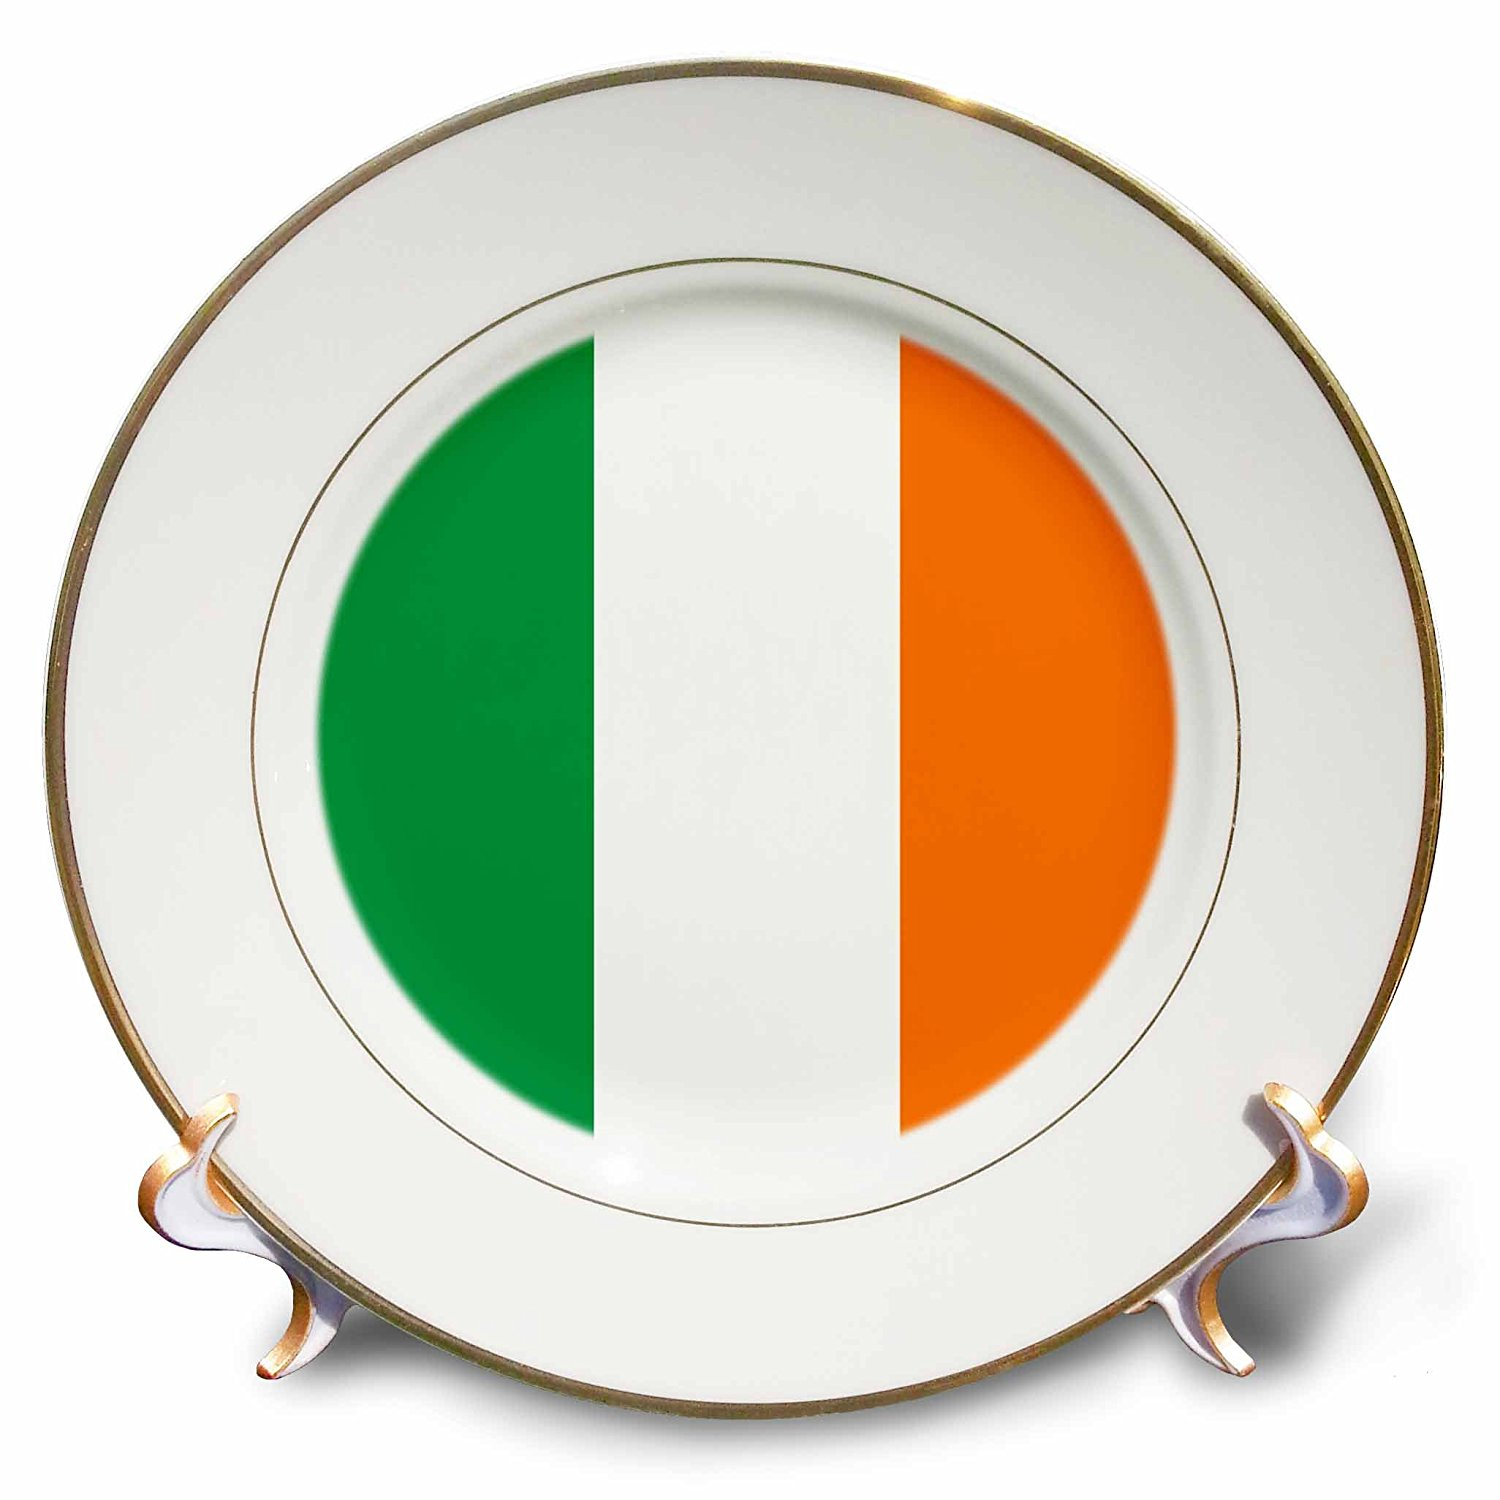 3dRose cp_158340_1 Flag of Ireland Irish Green White Orange Vertical Stripes United Kingdom Uk World Country Souvenir Porcelain Plate, 8""